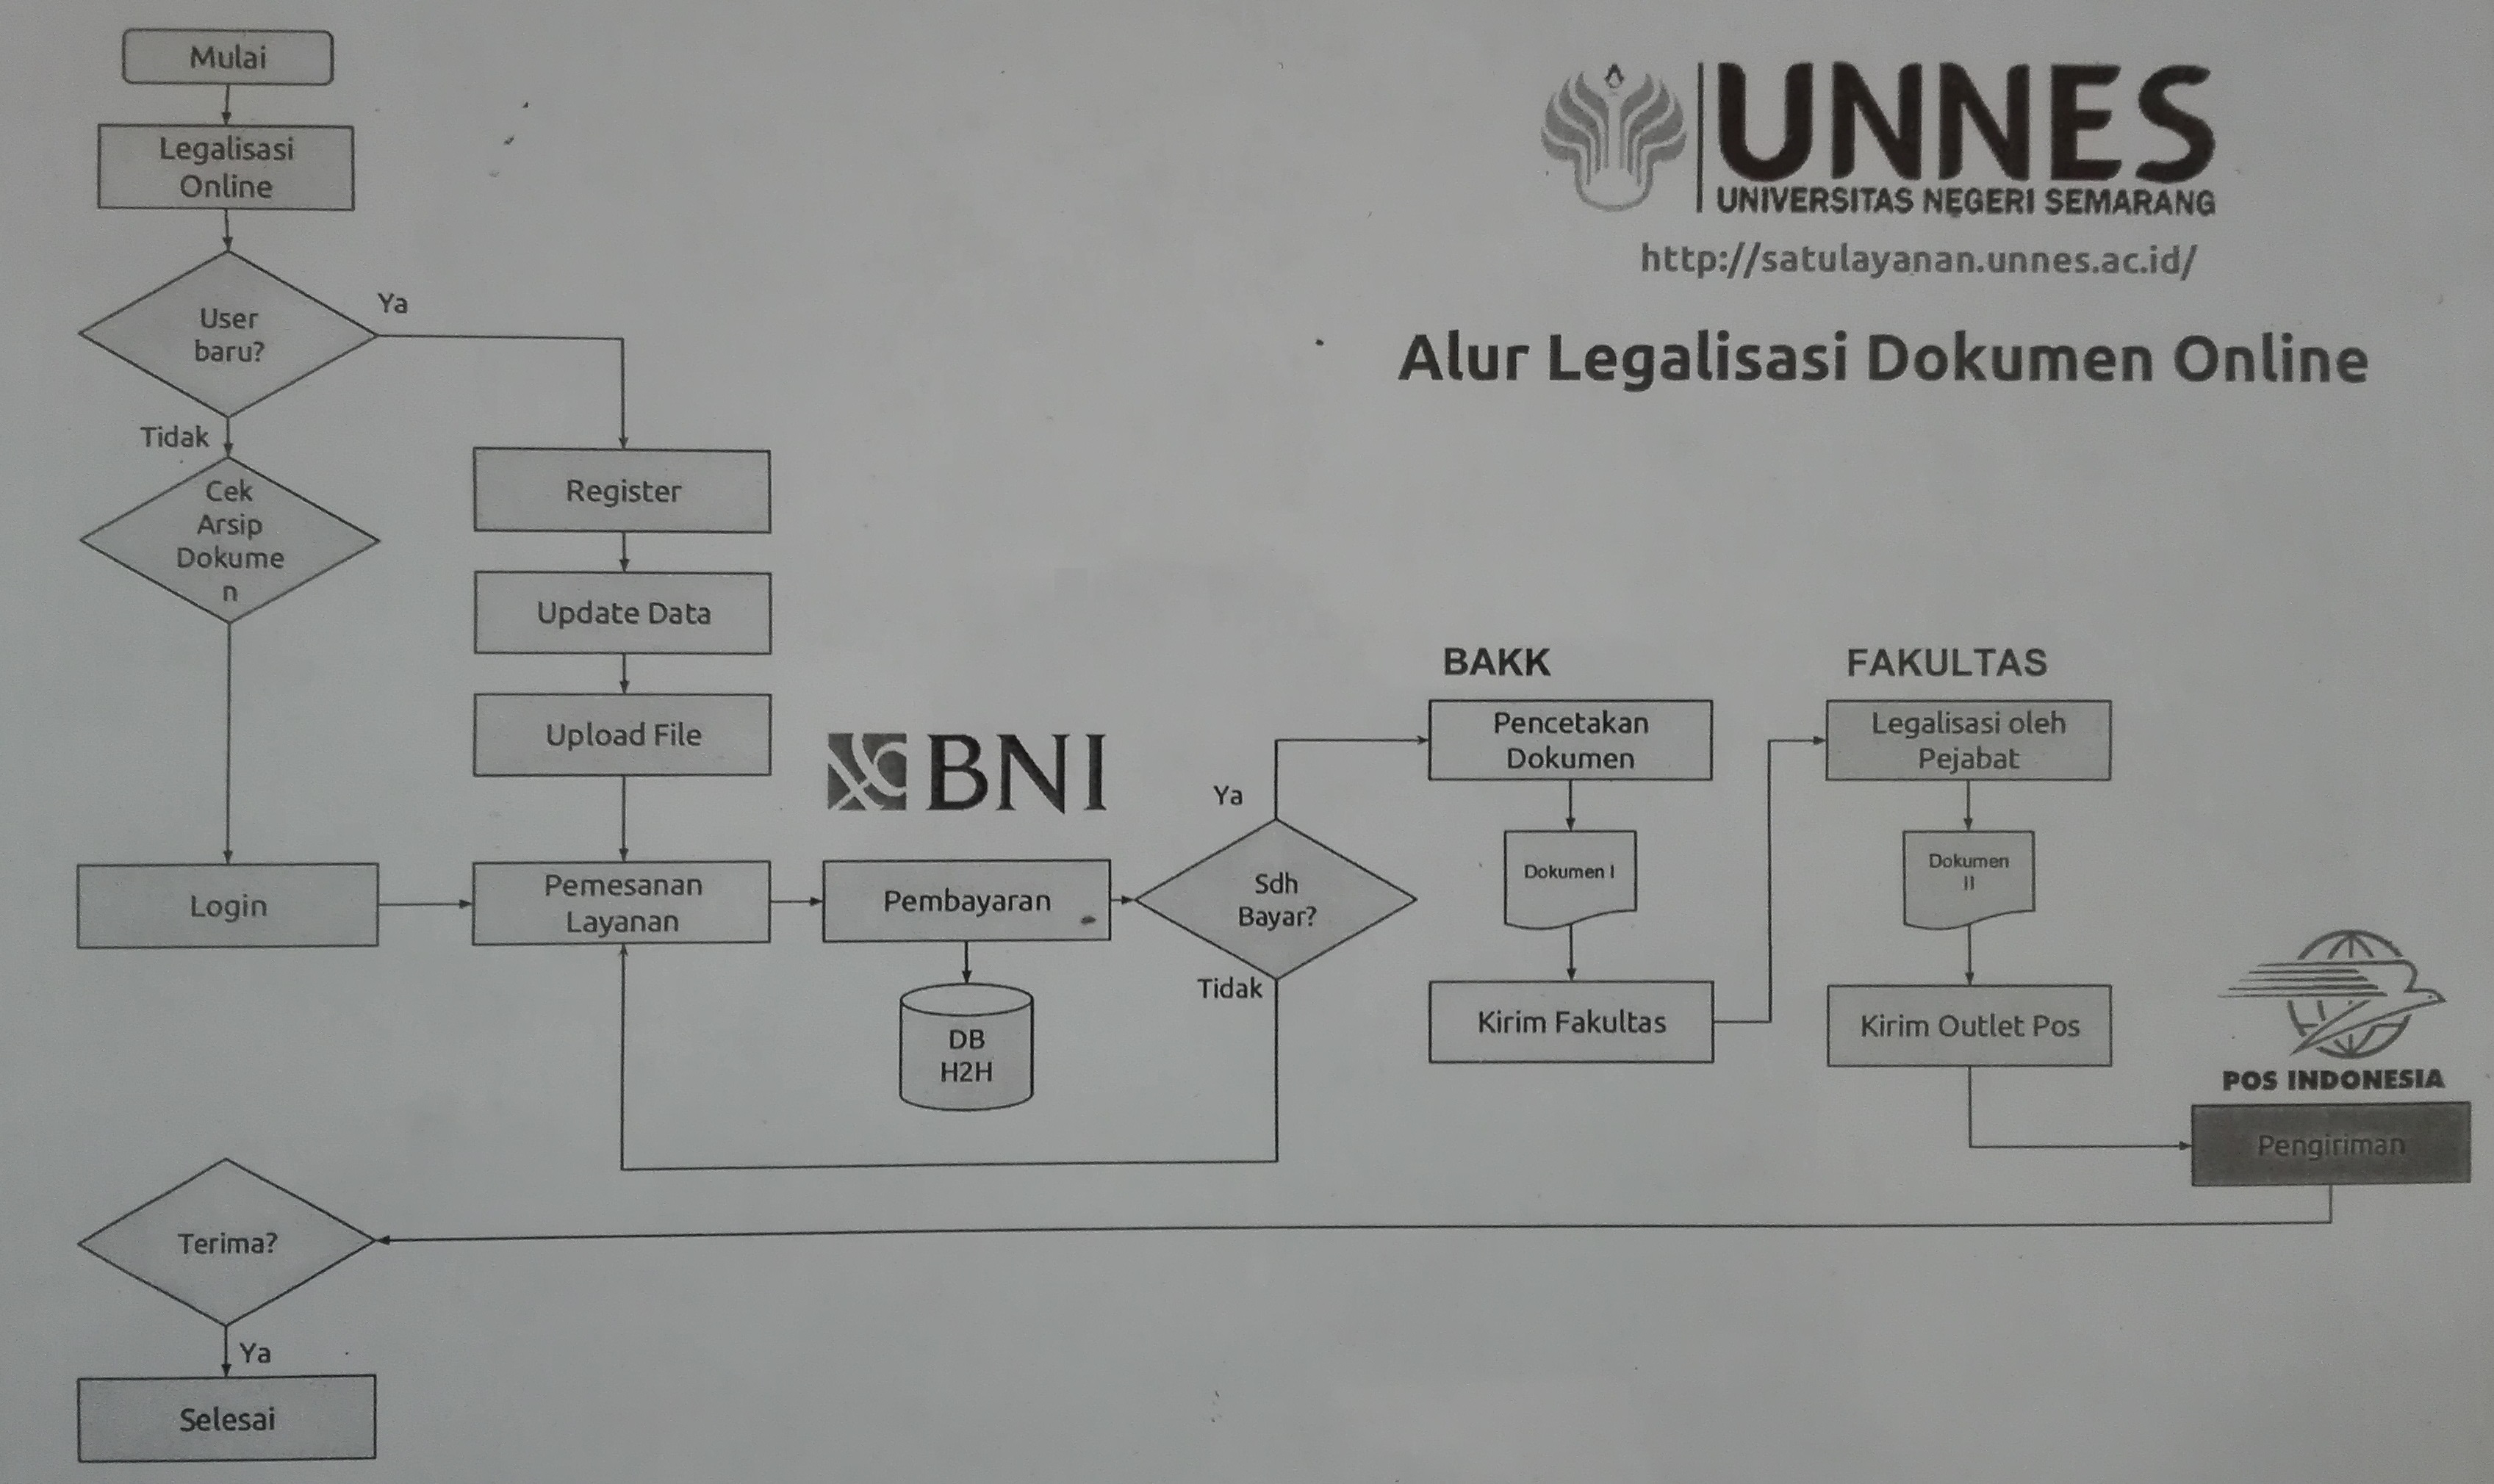 SatuLayanan_UNNES_alur